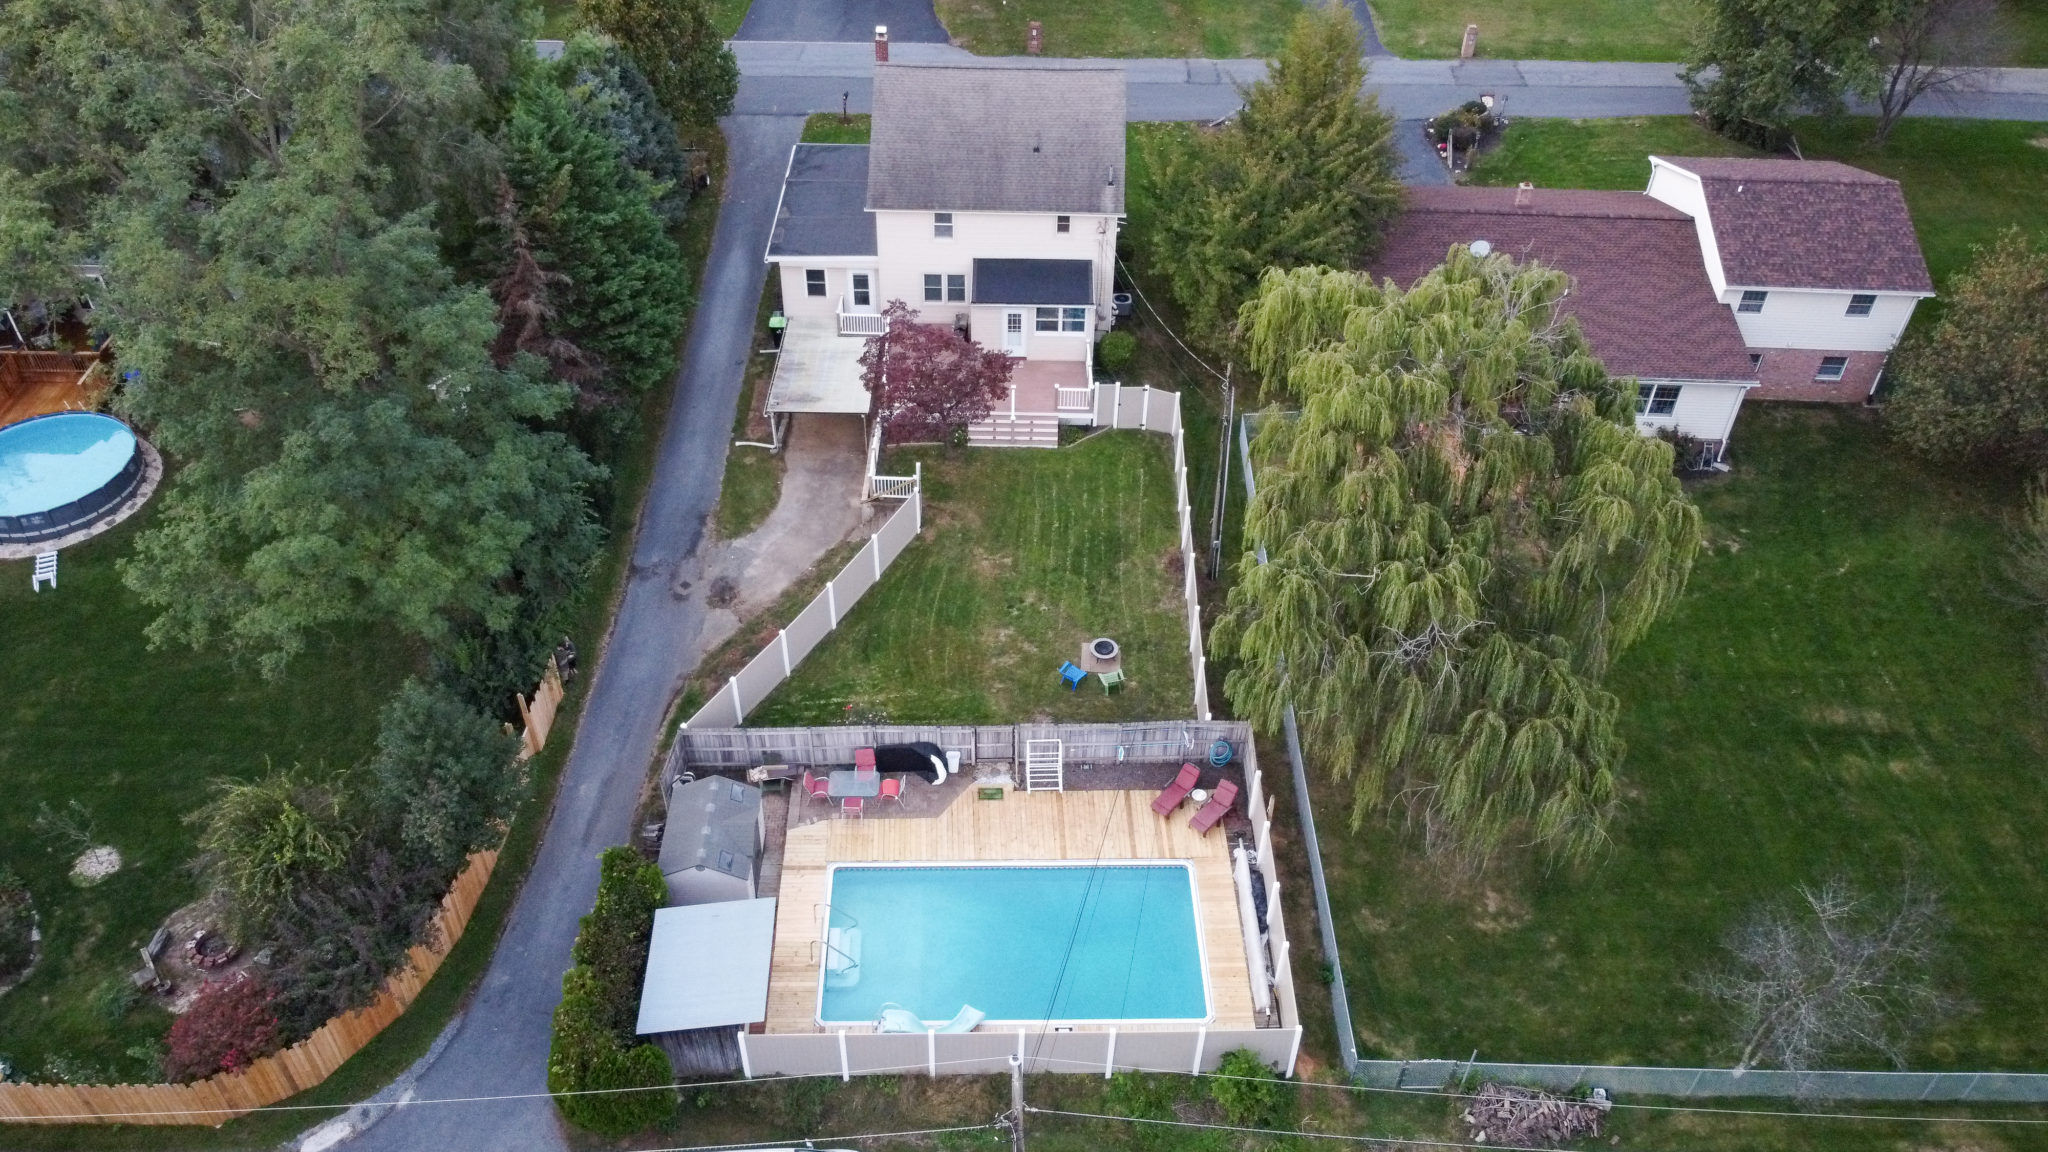 2022 Kline St - Overhead shot of charming single family home